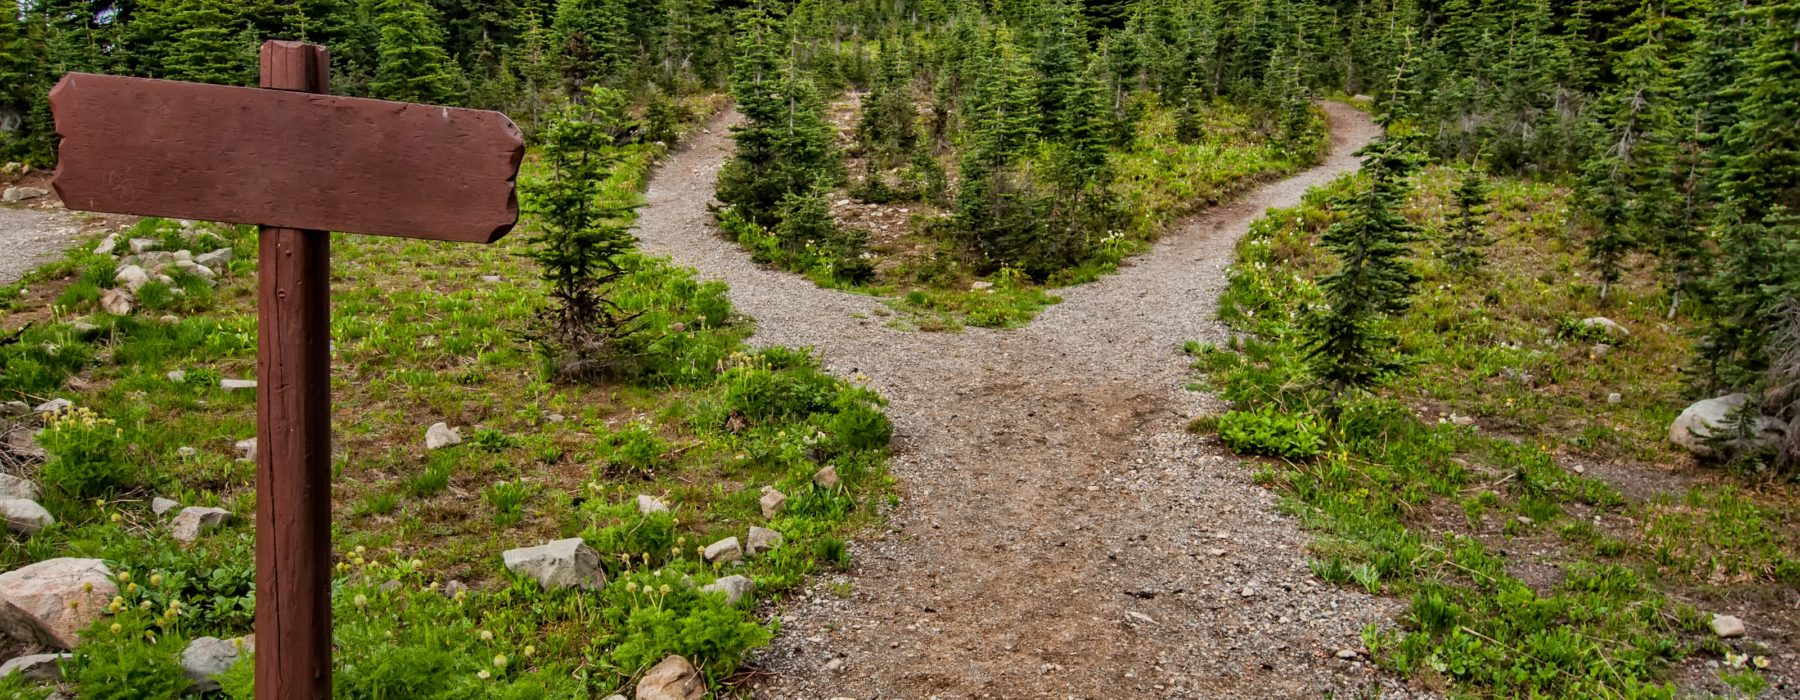 Two paths in a forest